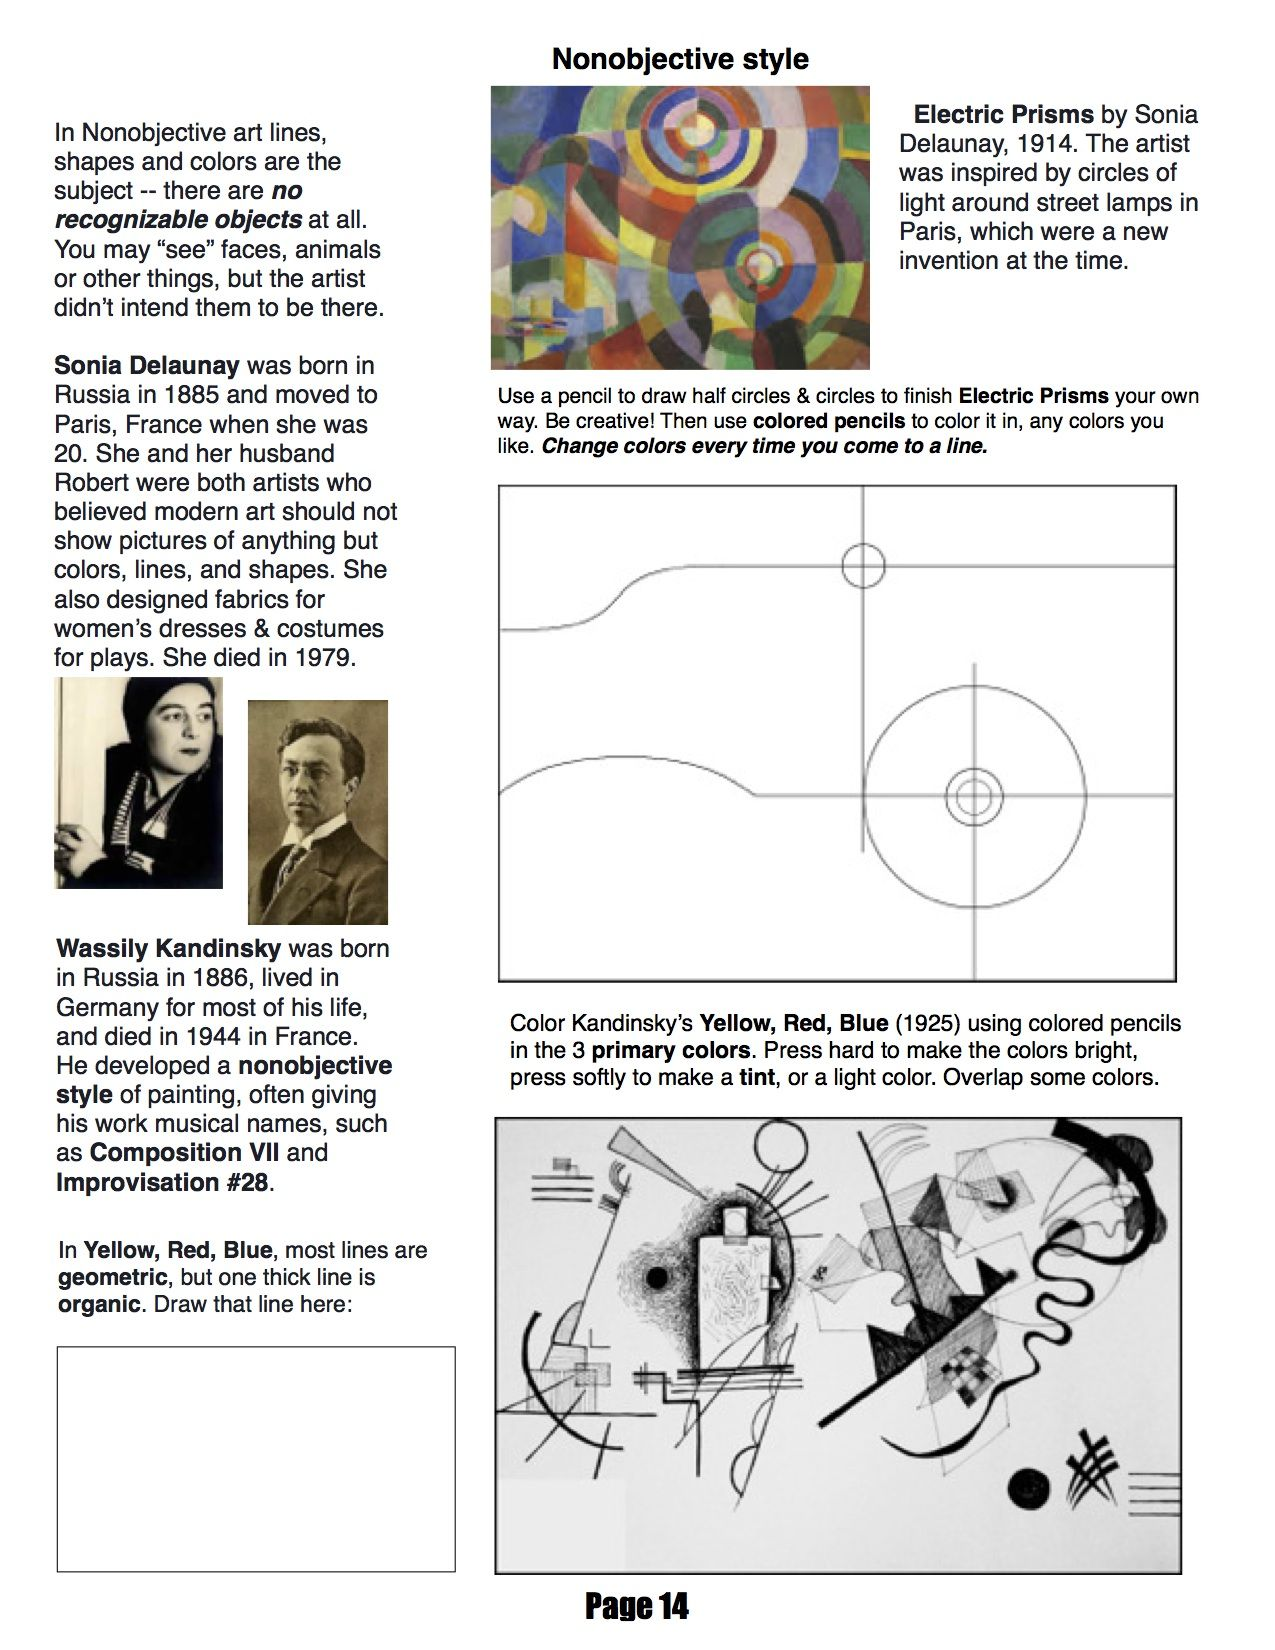 Ms. Mo's art room 4th grade workbook page about nonobjective art.